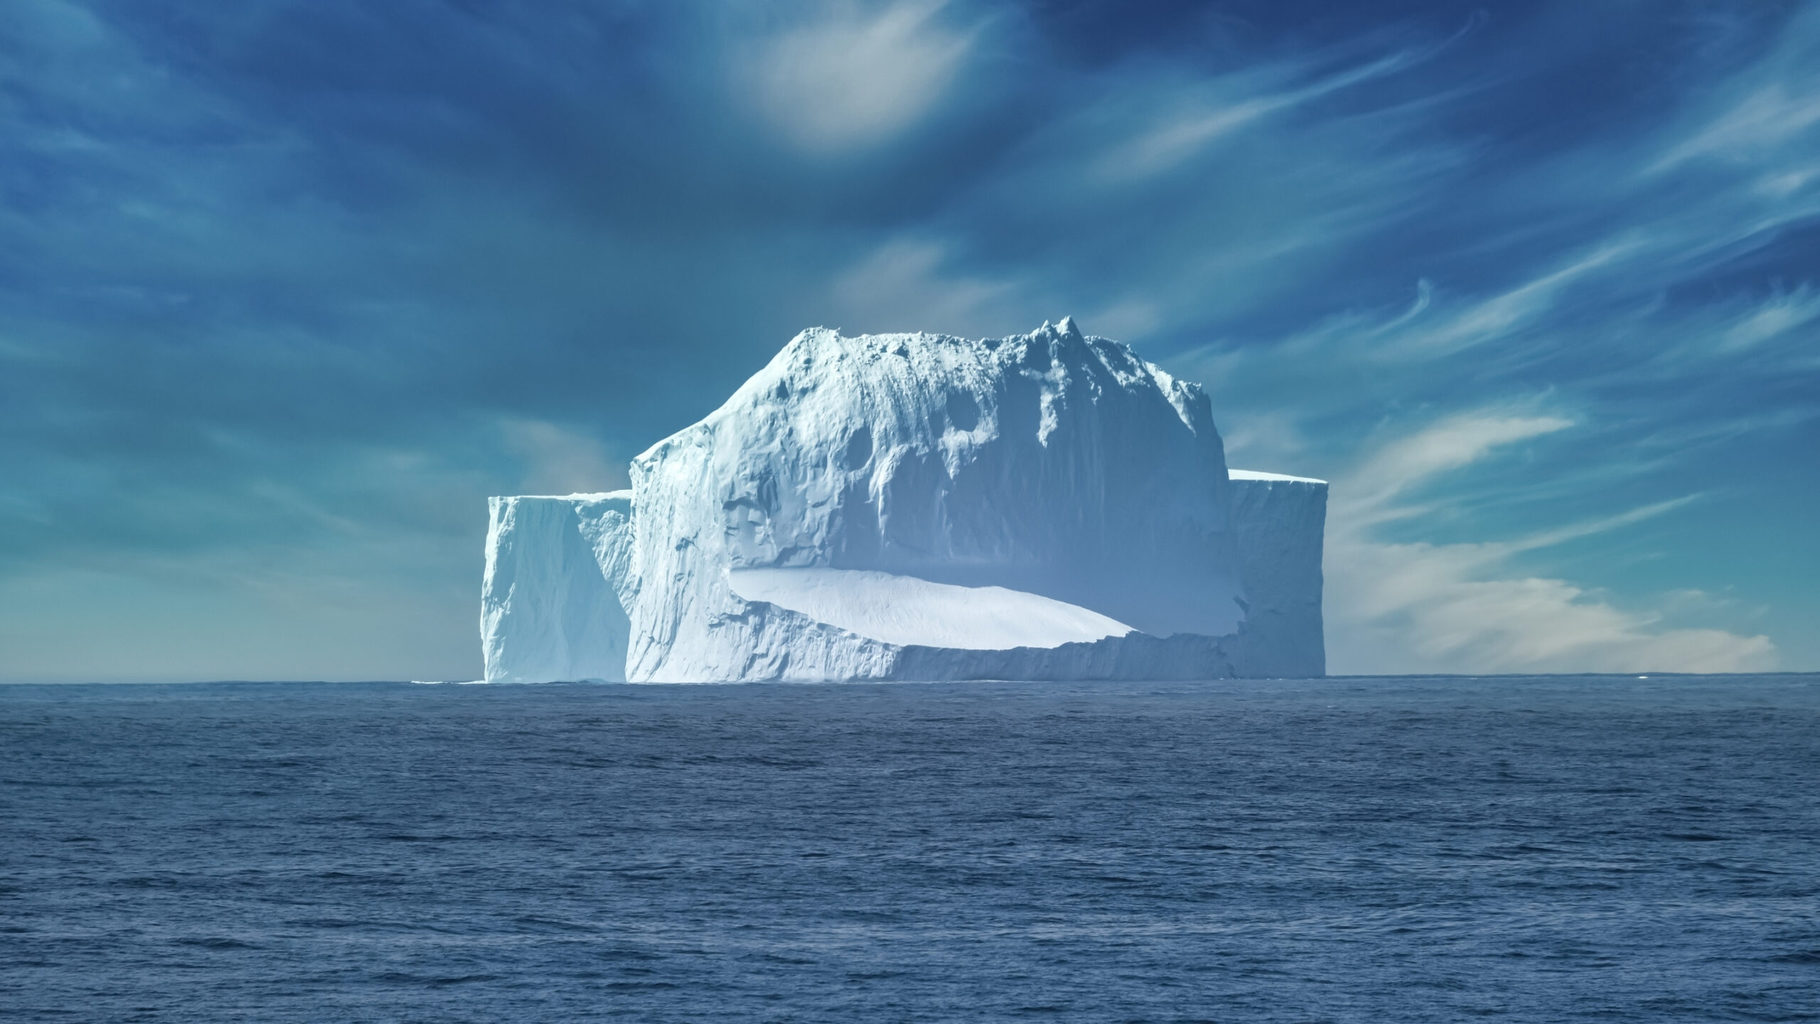 Understand where you want to visit in Antarctica